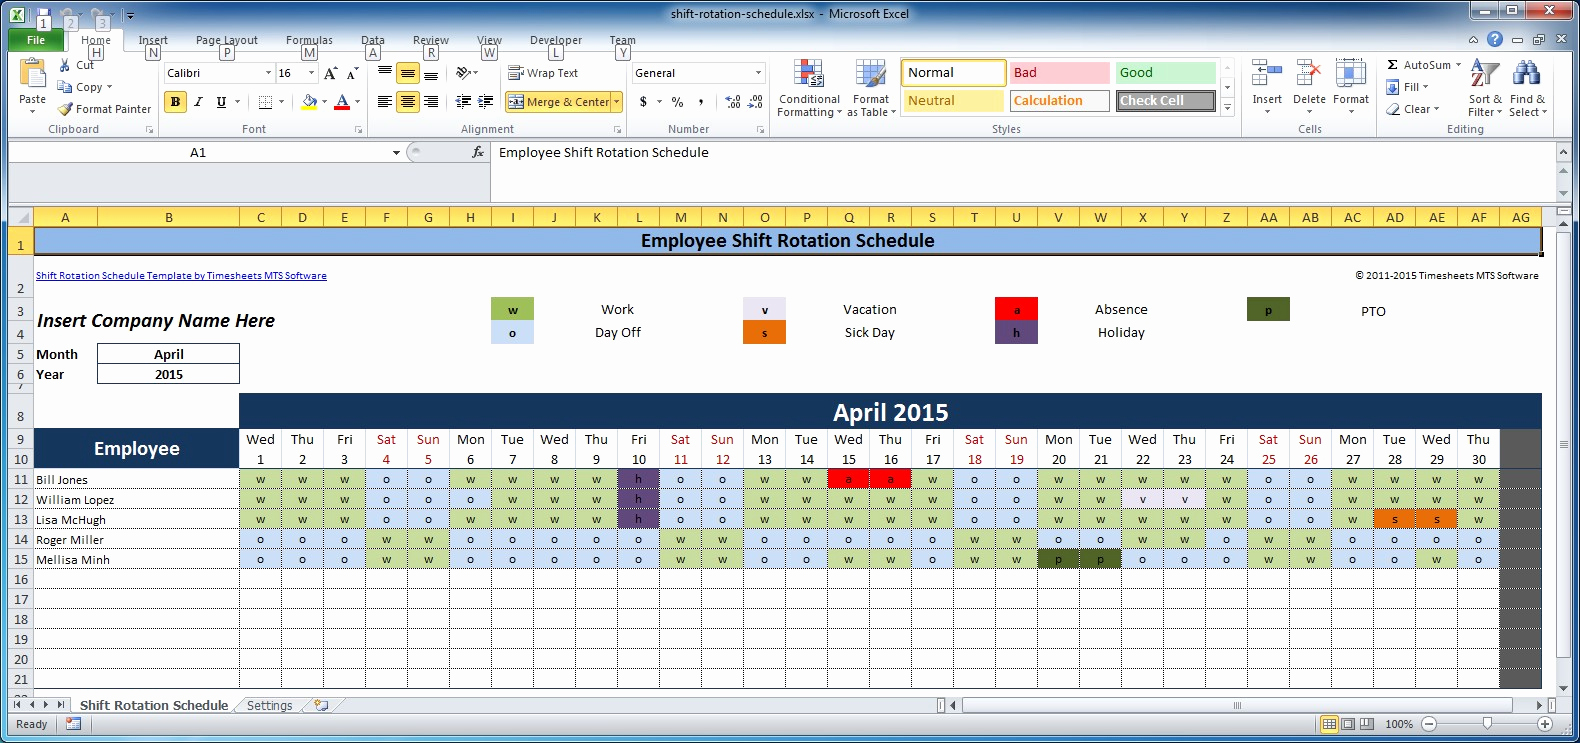 Employee Shift Schedule Template Inspirational Free Employee and Shift Schedule Templates